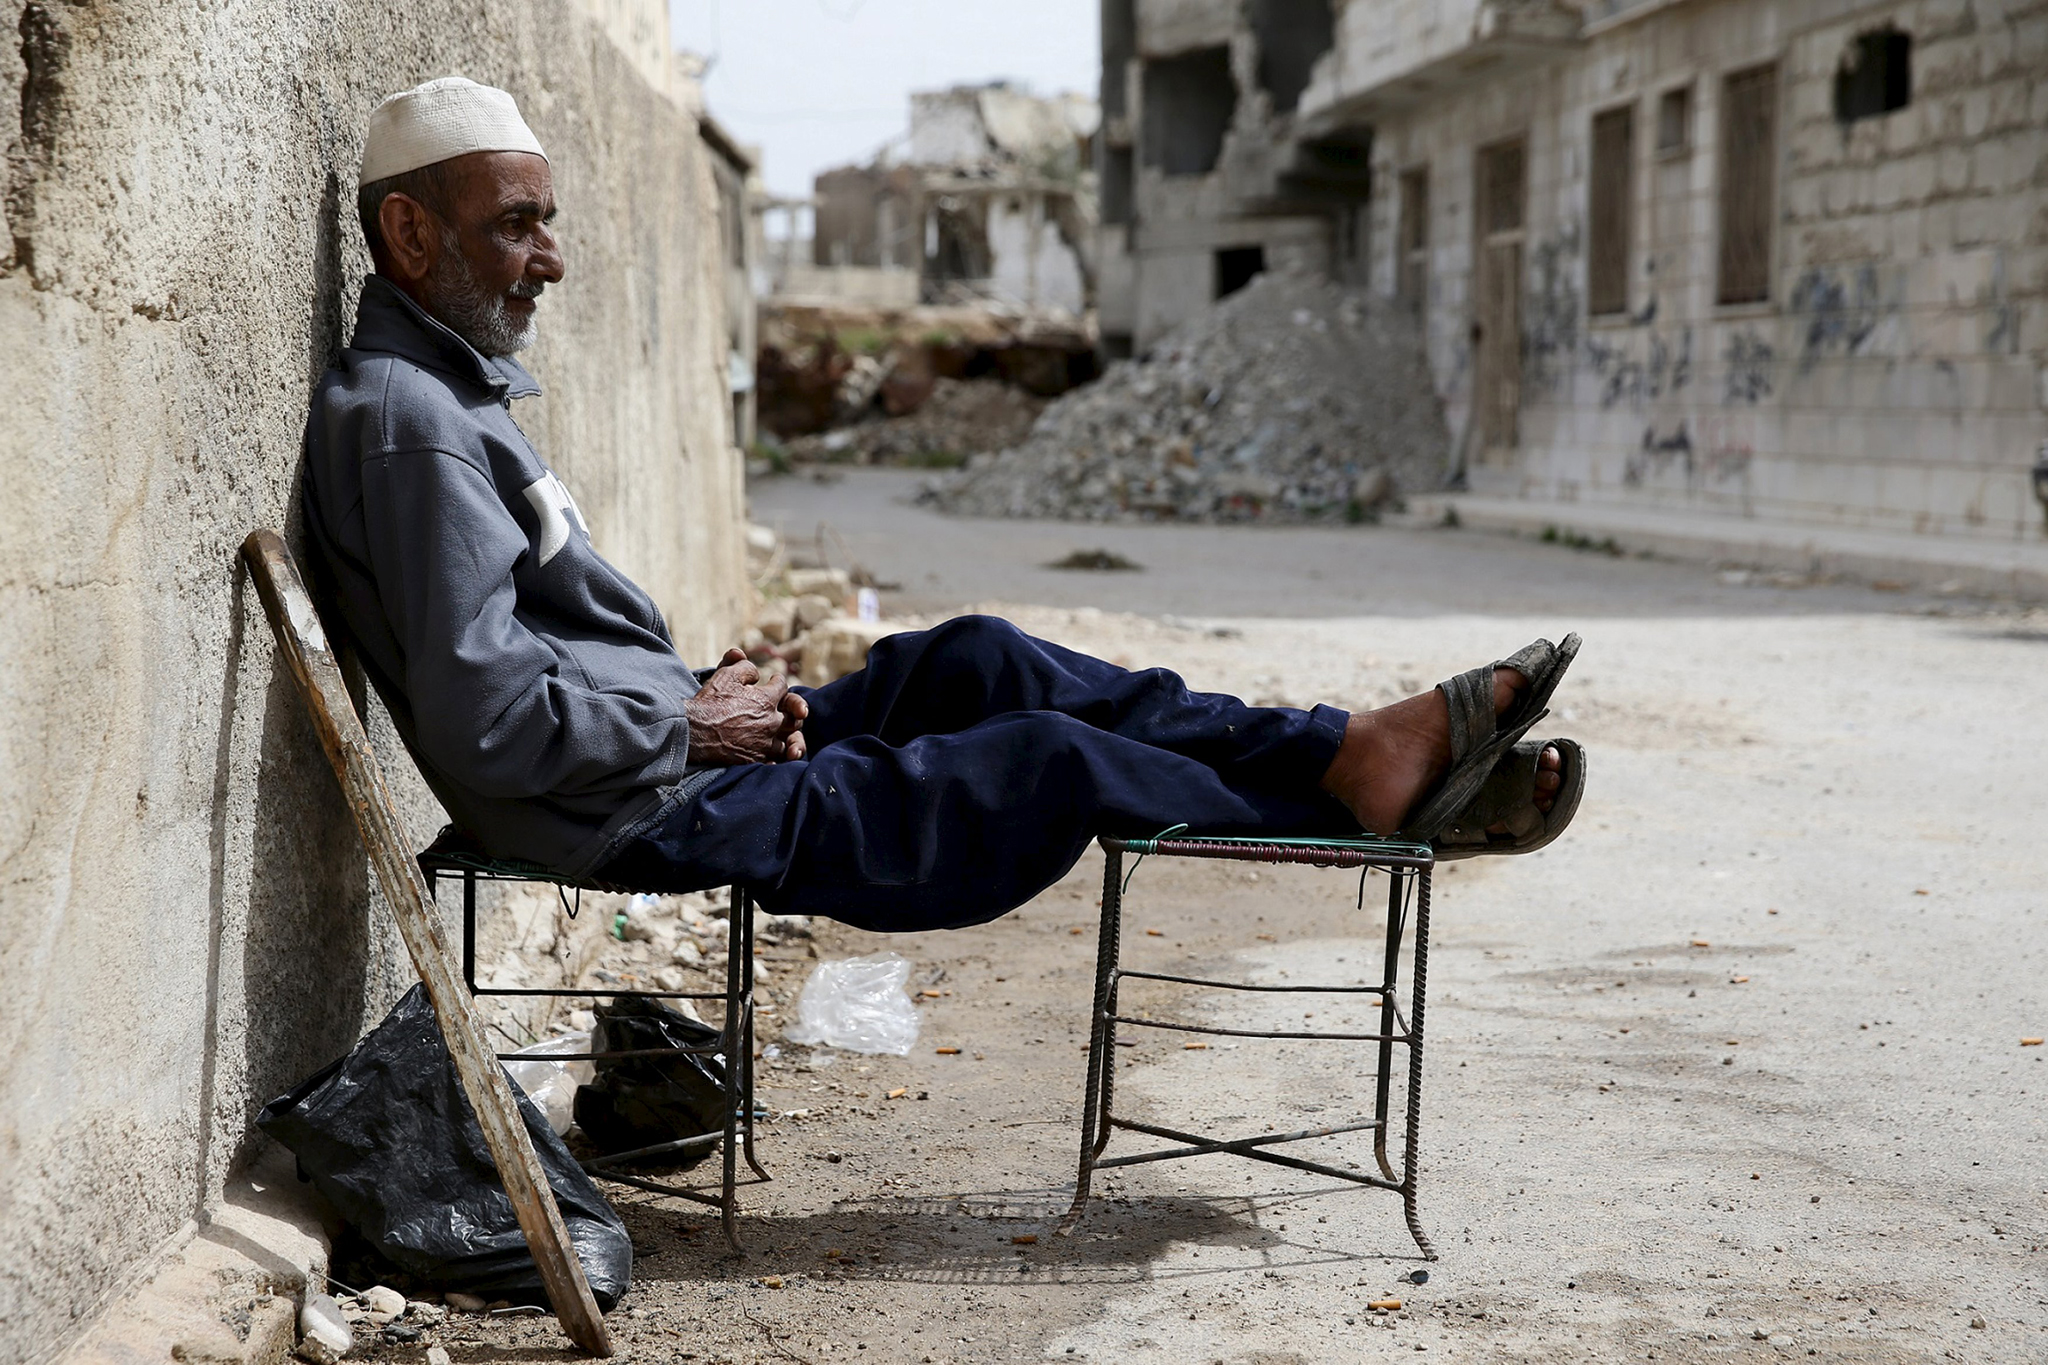 Khaled Kassmou, 70, sits along a street in the rebel held Qaboun neighborhood of Damascus...Khaled Kassmou, 70, sits along a street in the rebel held Qaboun neighborhood of Damascus, Syria March 13, 2016. Picture taken March 13, 2016. REUTERS/Bassam Khabieh